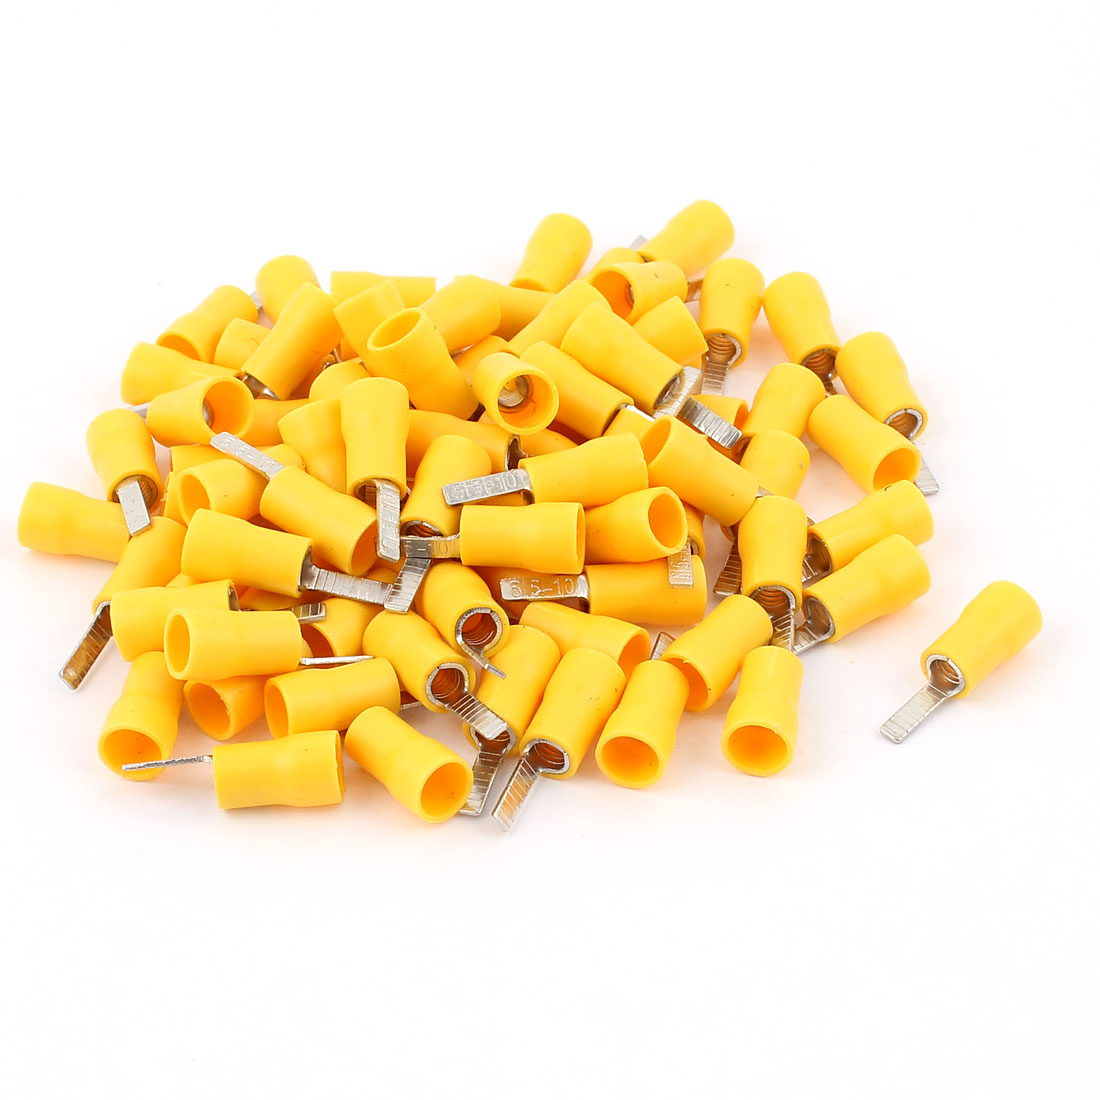 4-6mm2 Wire Electrical Crimp Connectors Insulated Flat Flake Terminal 80pcs